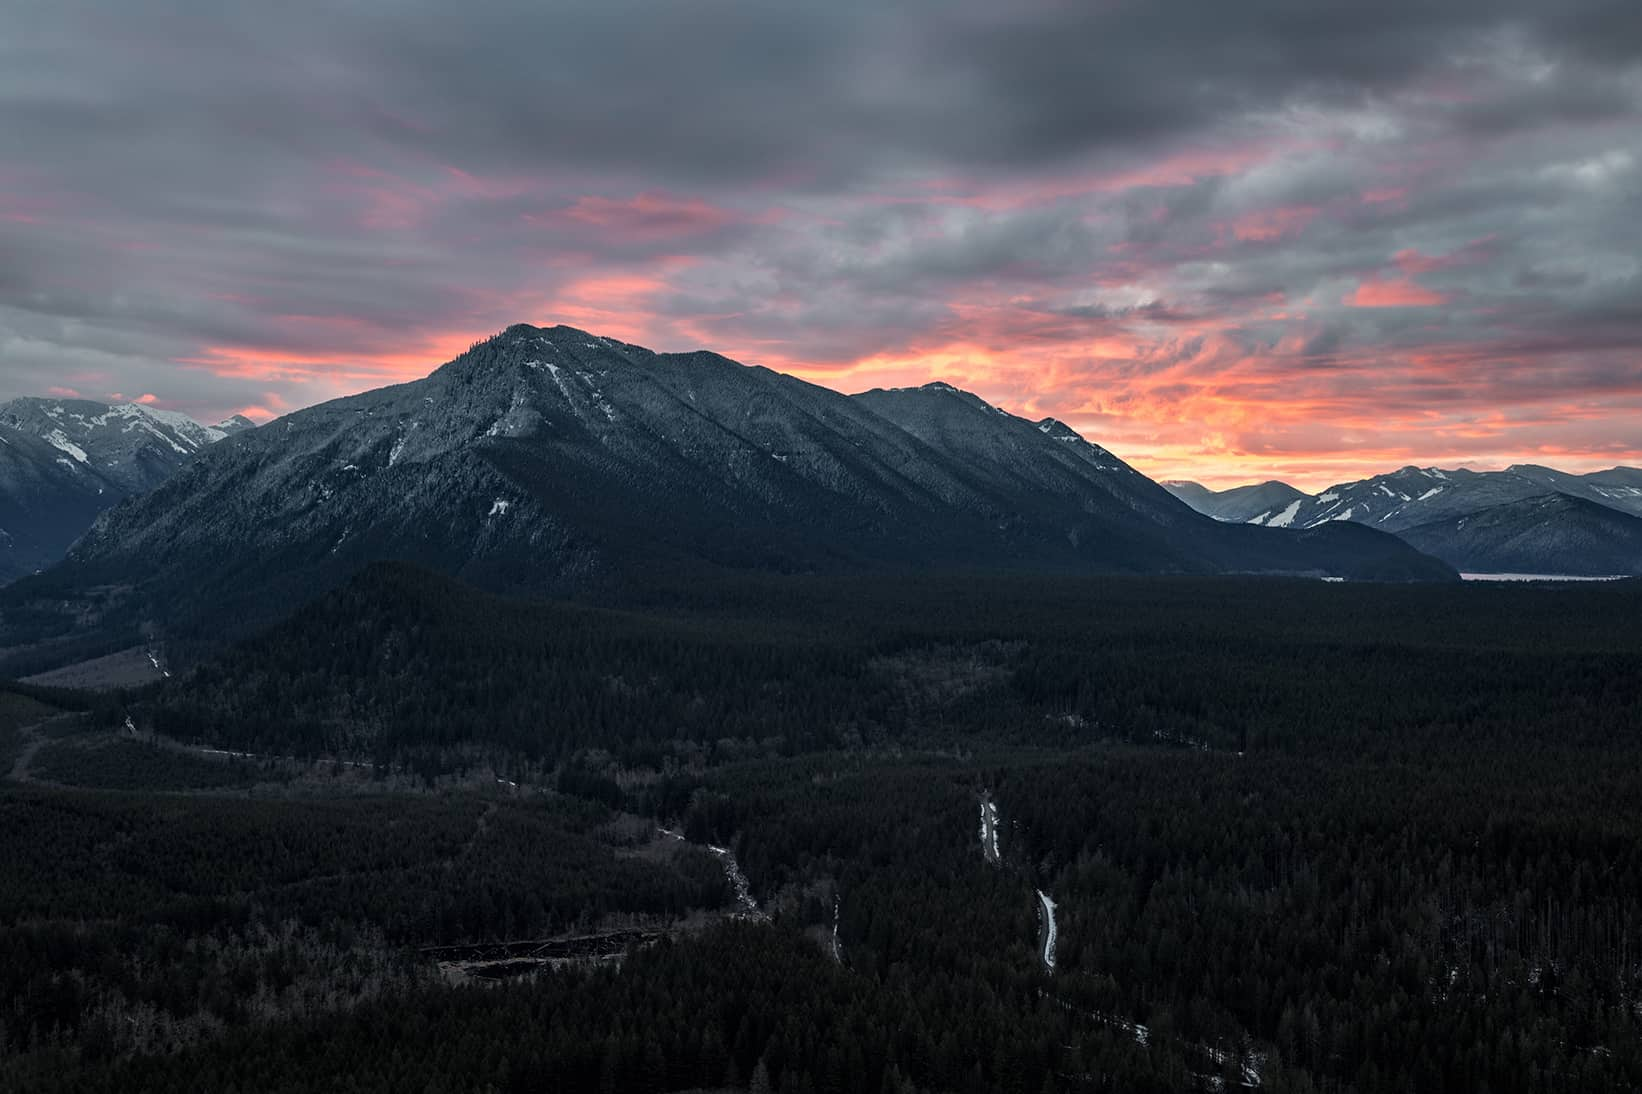 RAW image of a dark mountain with sunset in the background.